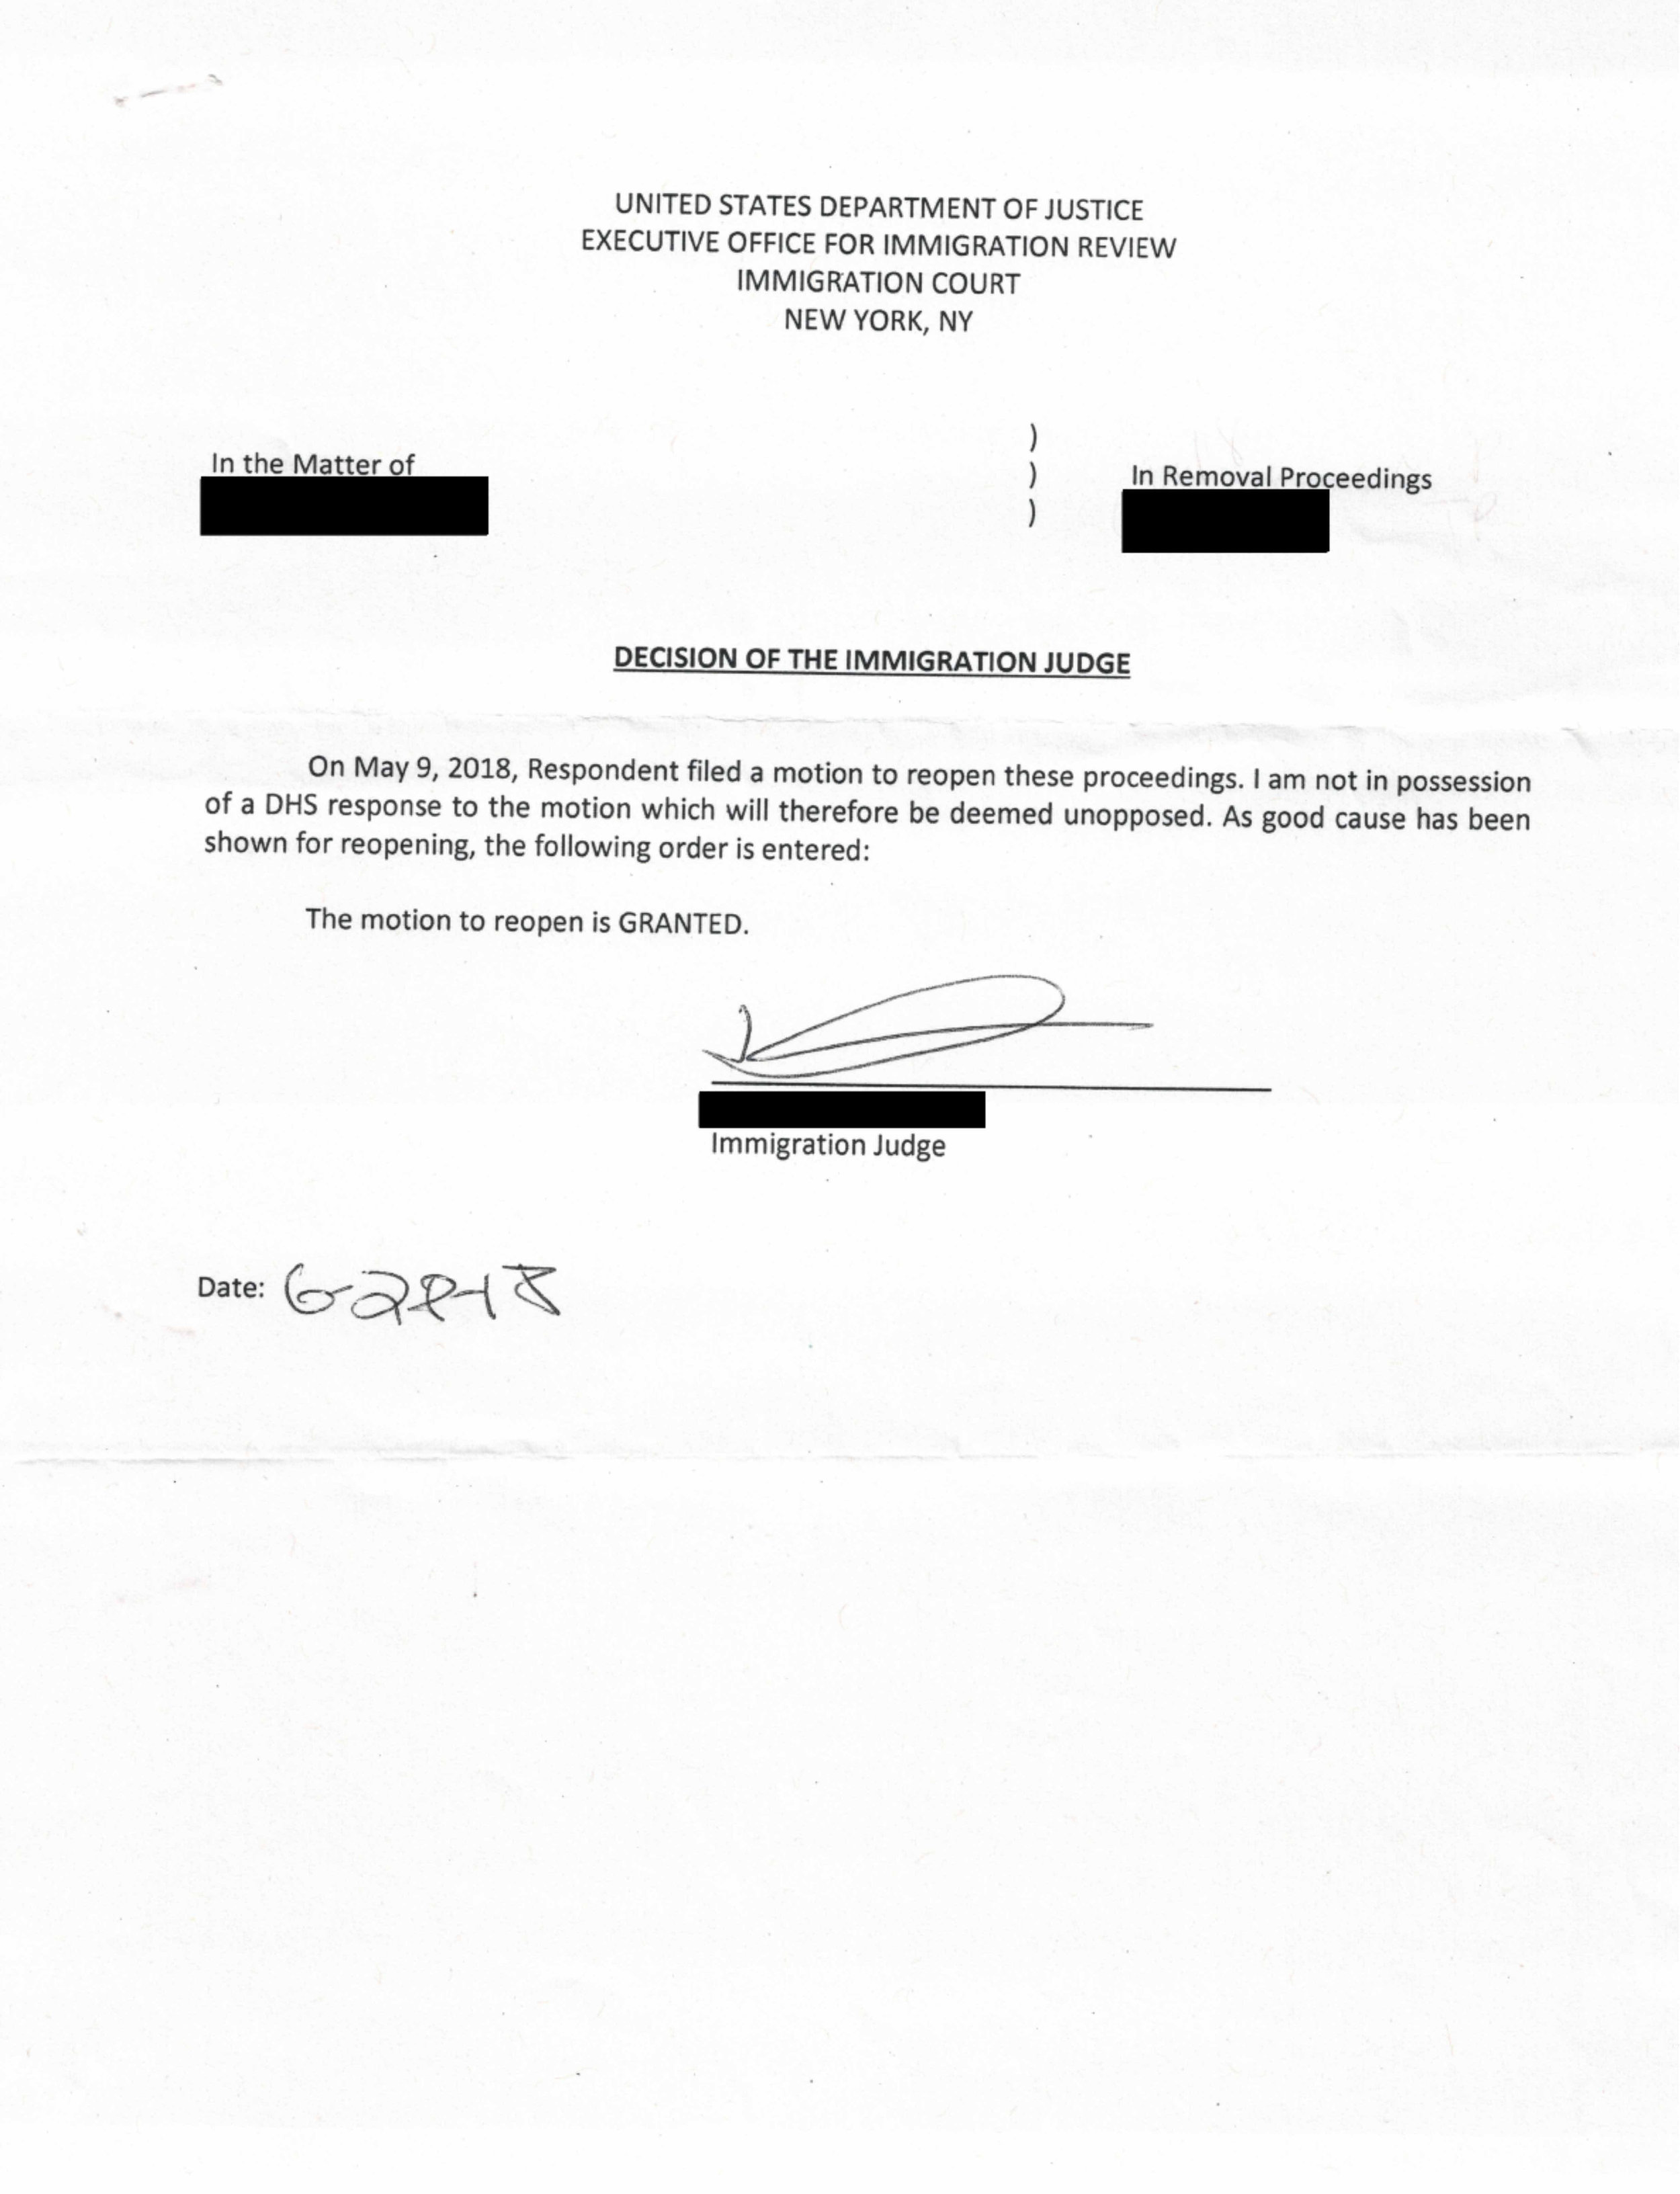 Order of the Immigration Judge - Motion to Reopen in absentia order granted